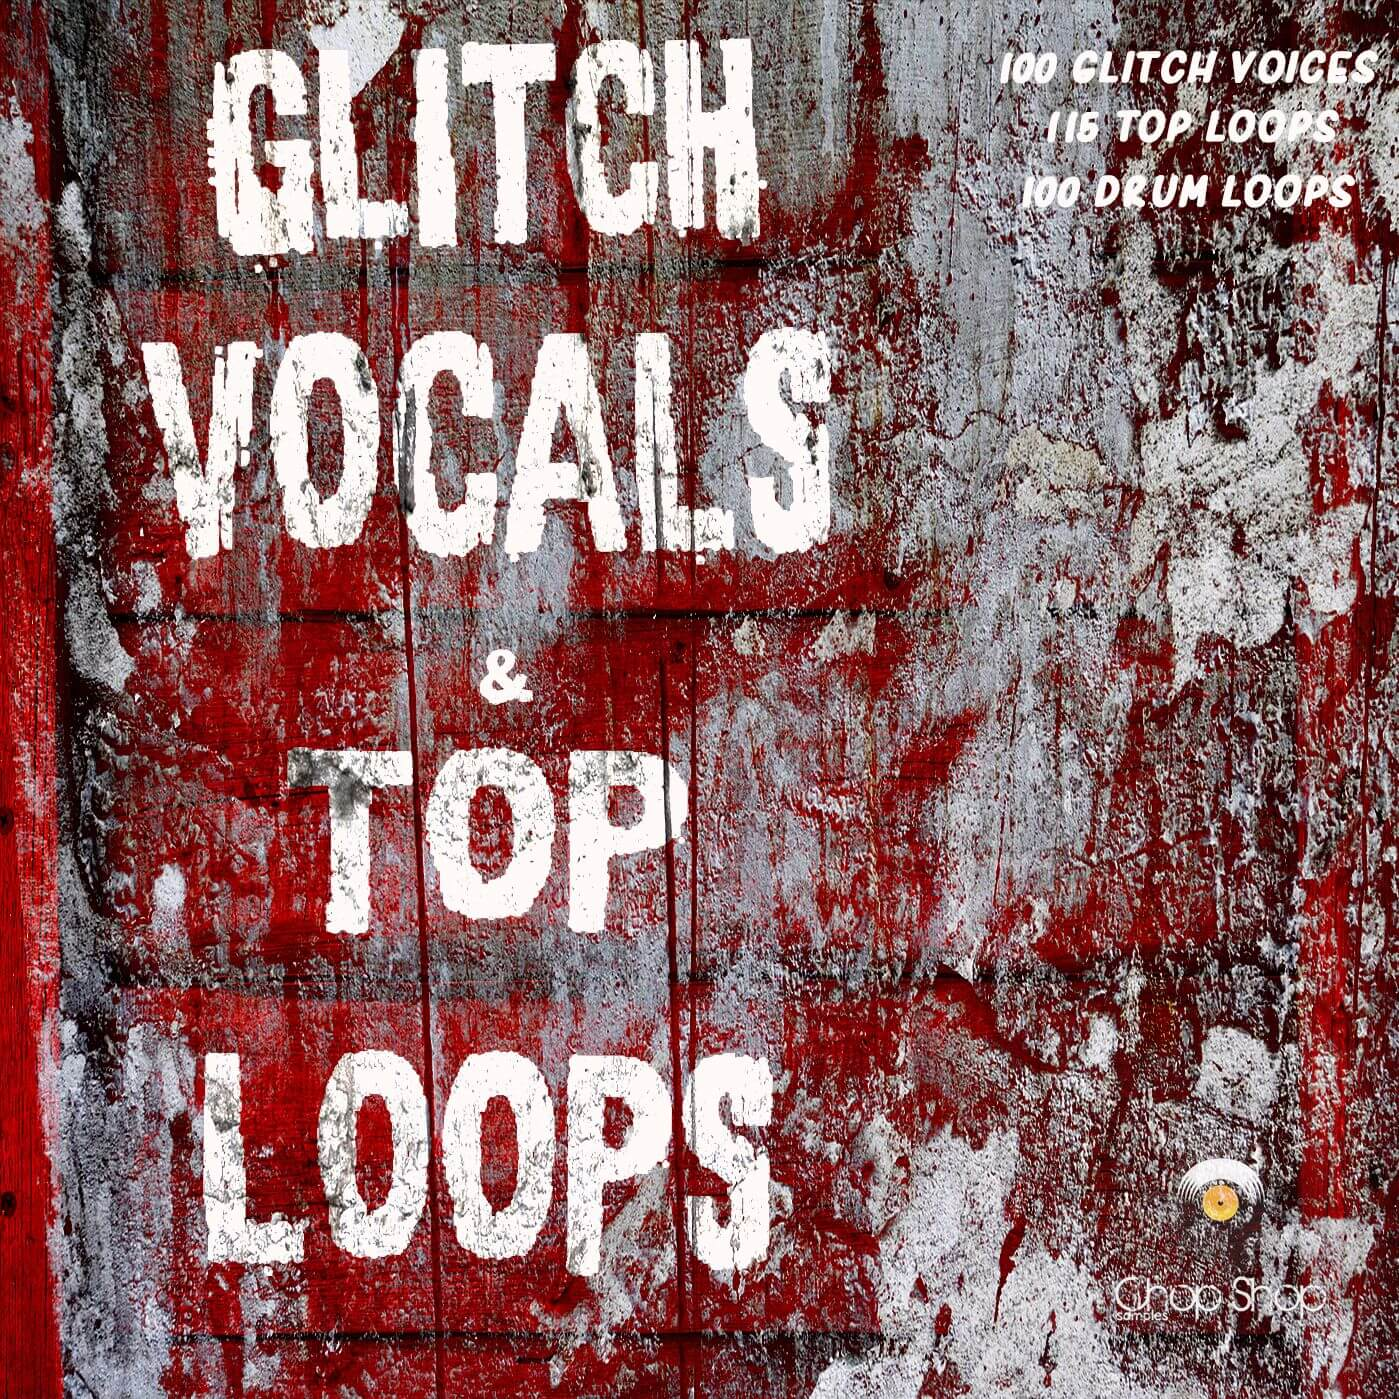 Glitch Vocals & Top Loops and Techno Vocals by Chop Shop Samples